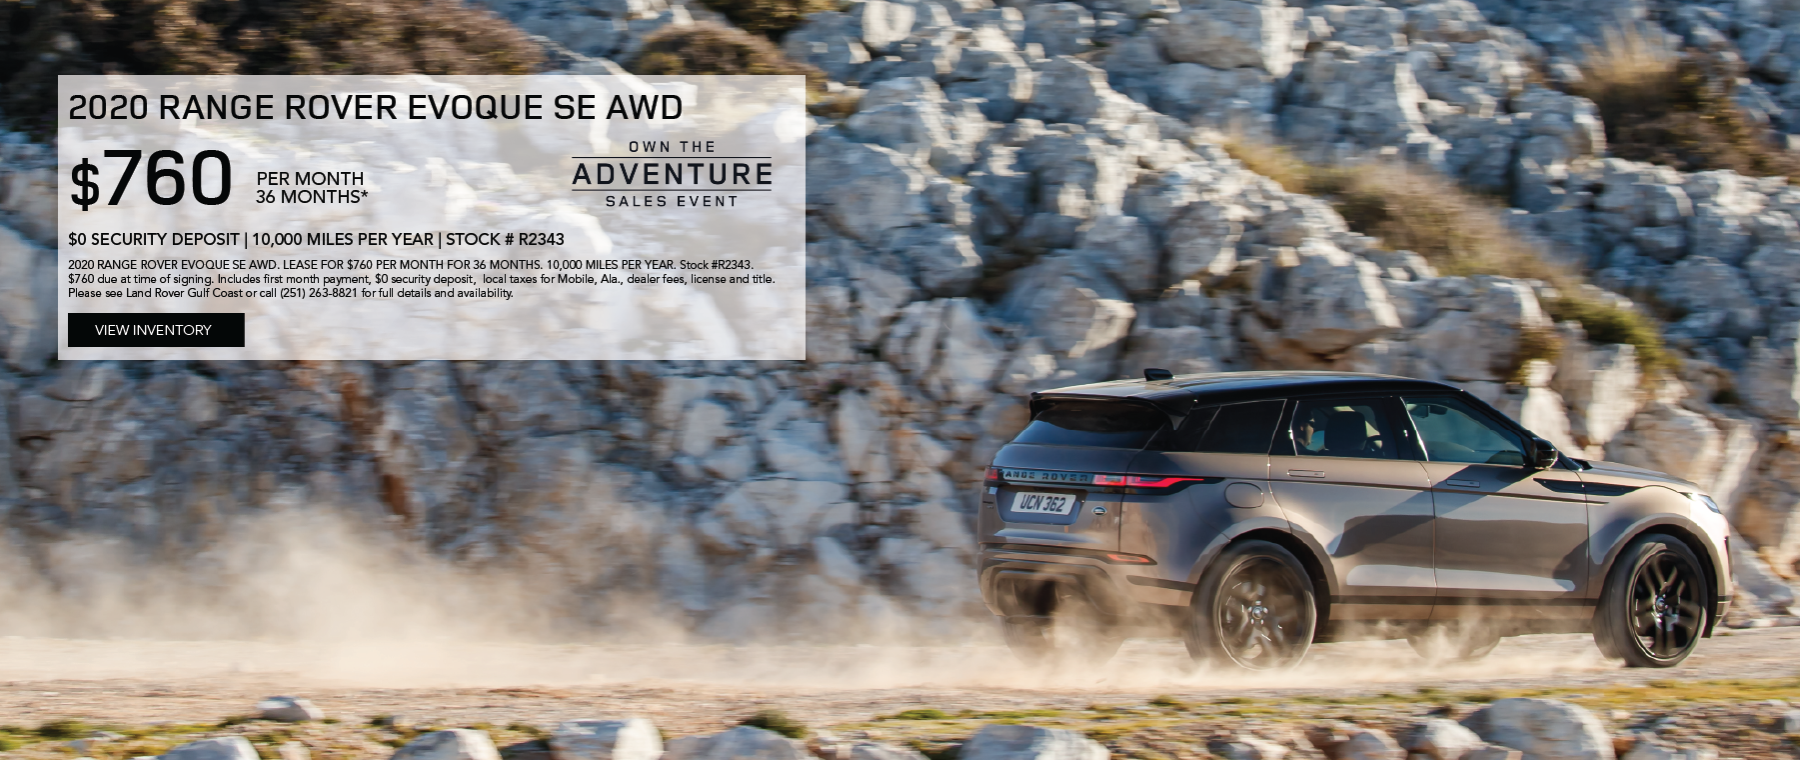 Beige 2020 Range Rover Evoque SE AWD on dirt road. $760/month 10,000 miles per year lease for 36 months. Stock #R2343. $760 due at time of signing. Includes first month payment, $0 security deposit, local taxes for Mobile, Ala., dealer fees, license and title. Please see Land Rover Gulf Coast or call (251) 263-8821 for full details and availability. Click to view inventory.